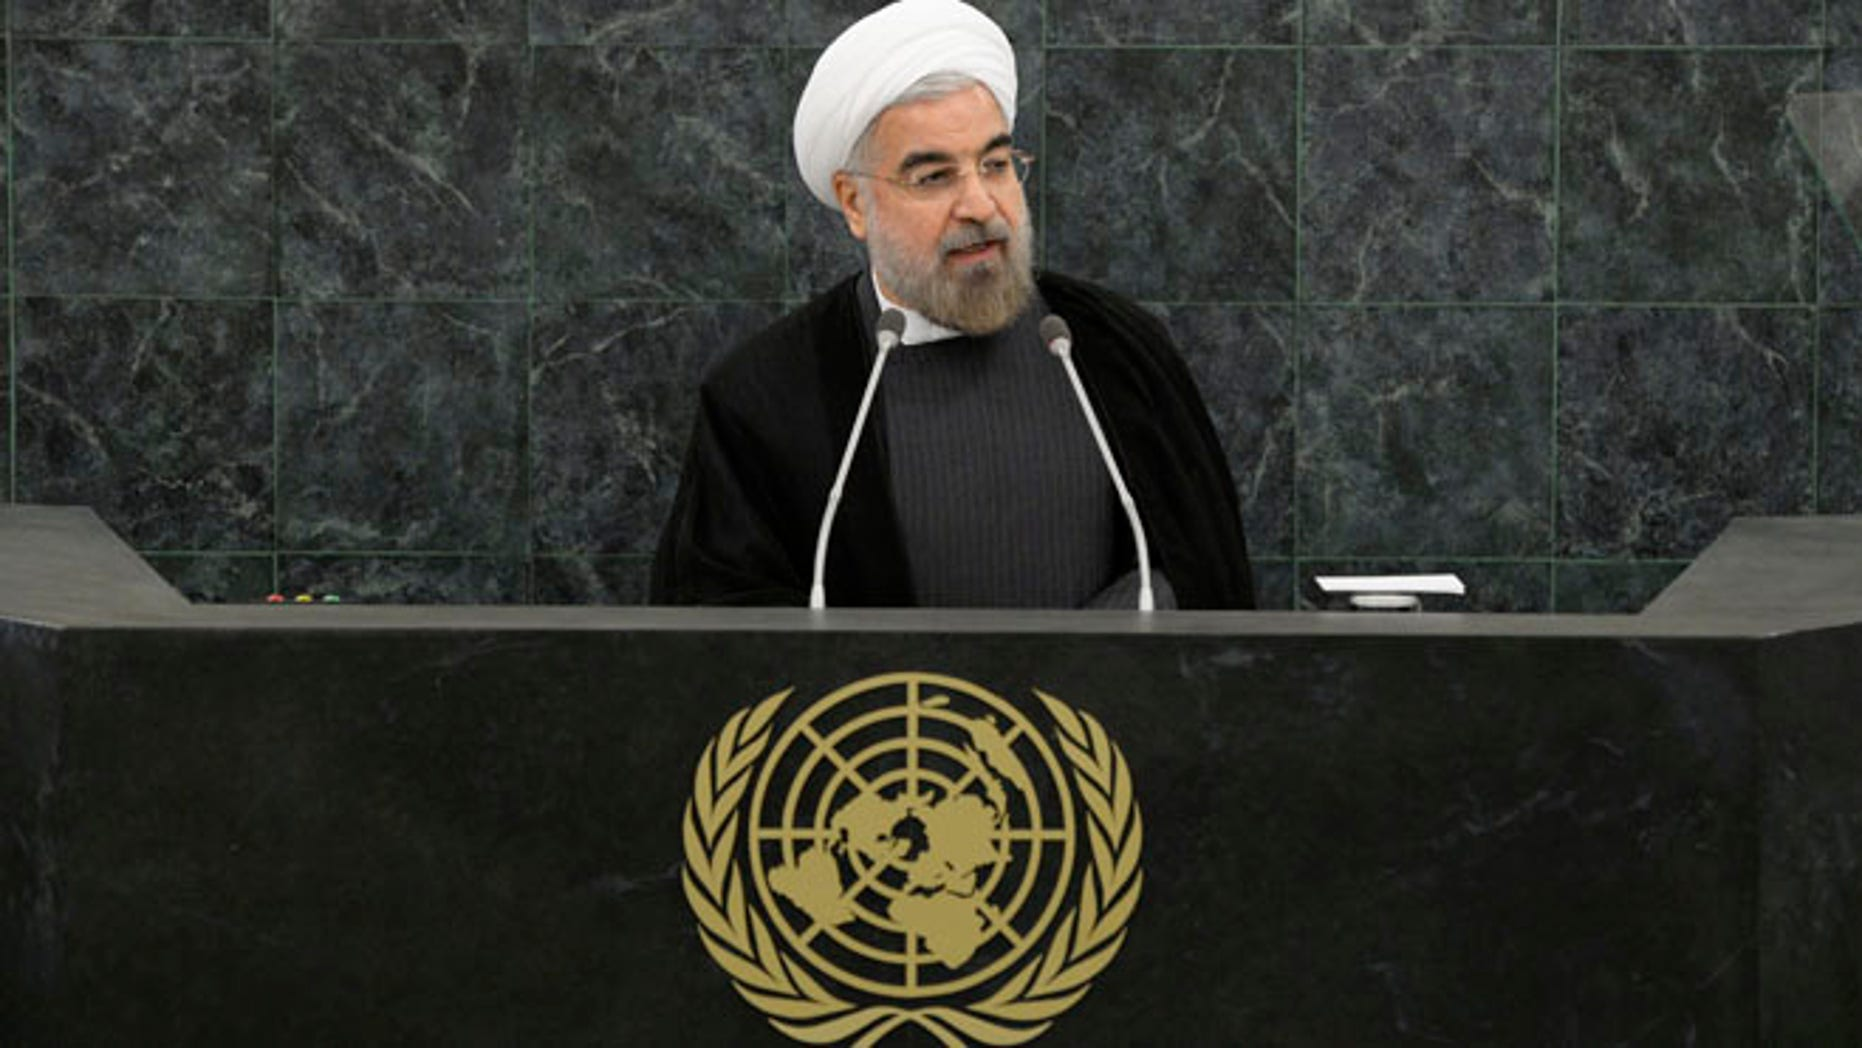 Sept. 26, 2013: Iranian President Hassan Rouhani addresses a High-Level Meeting on Nuclear Disarmament during the 68th United Nations General Assembly at U.N. headquarters in New York.